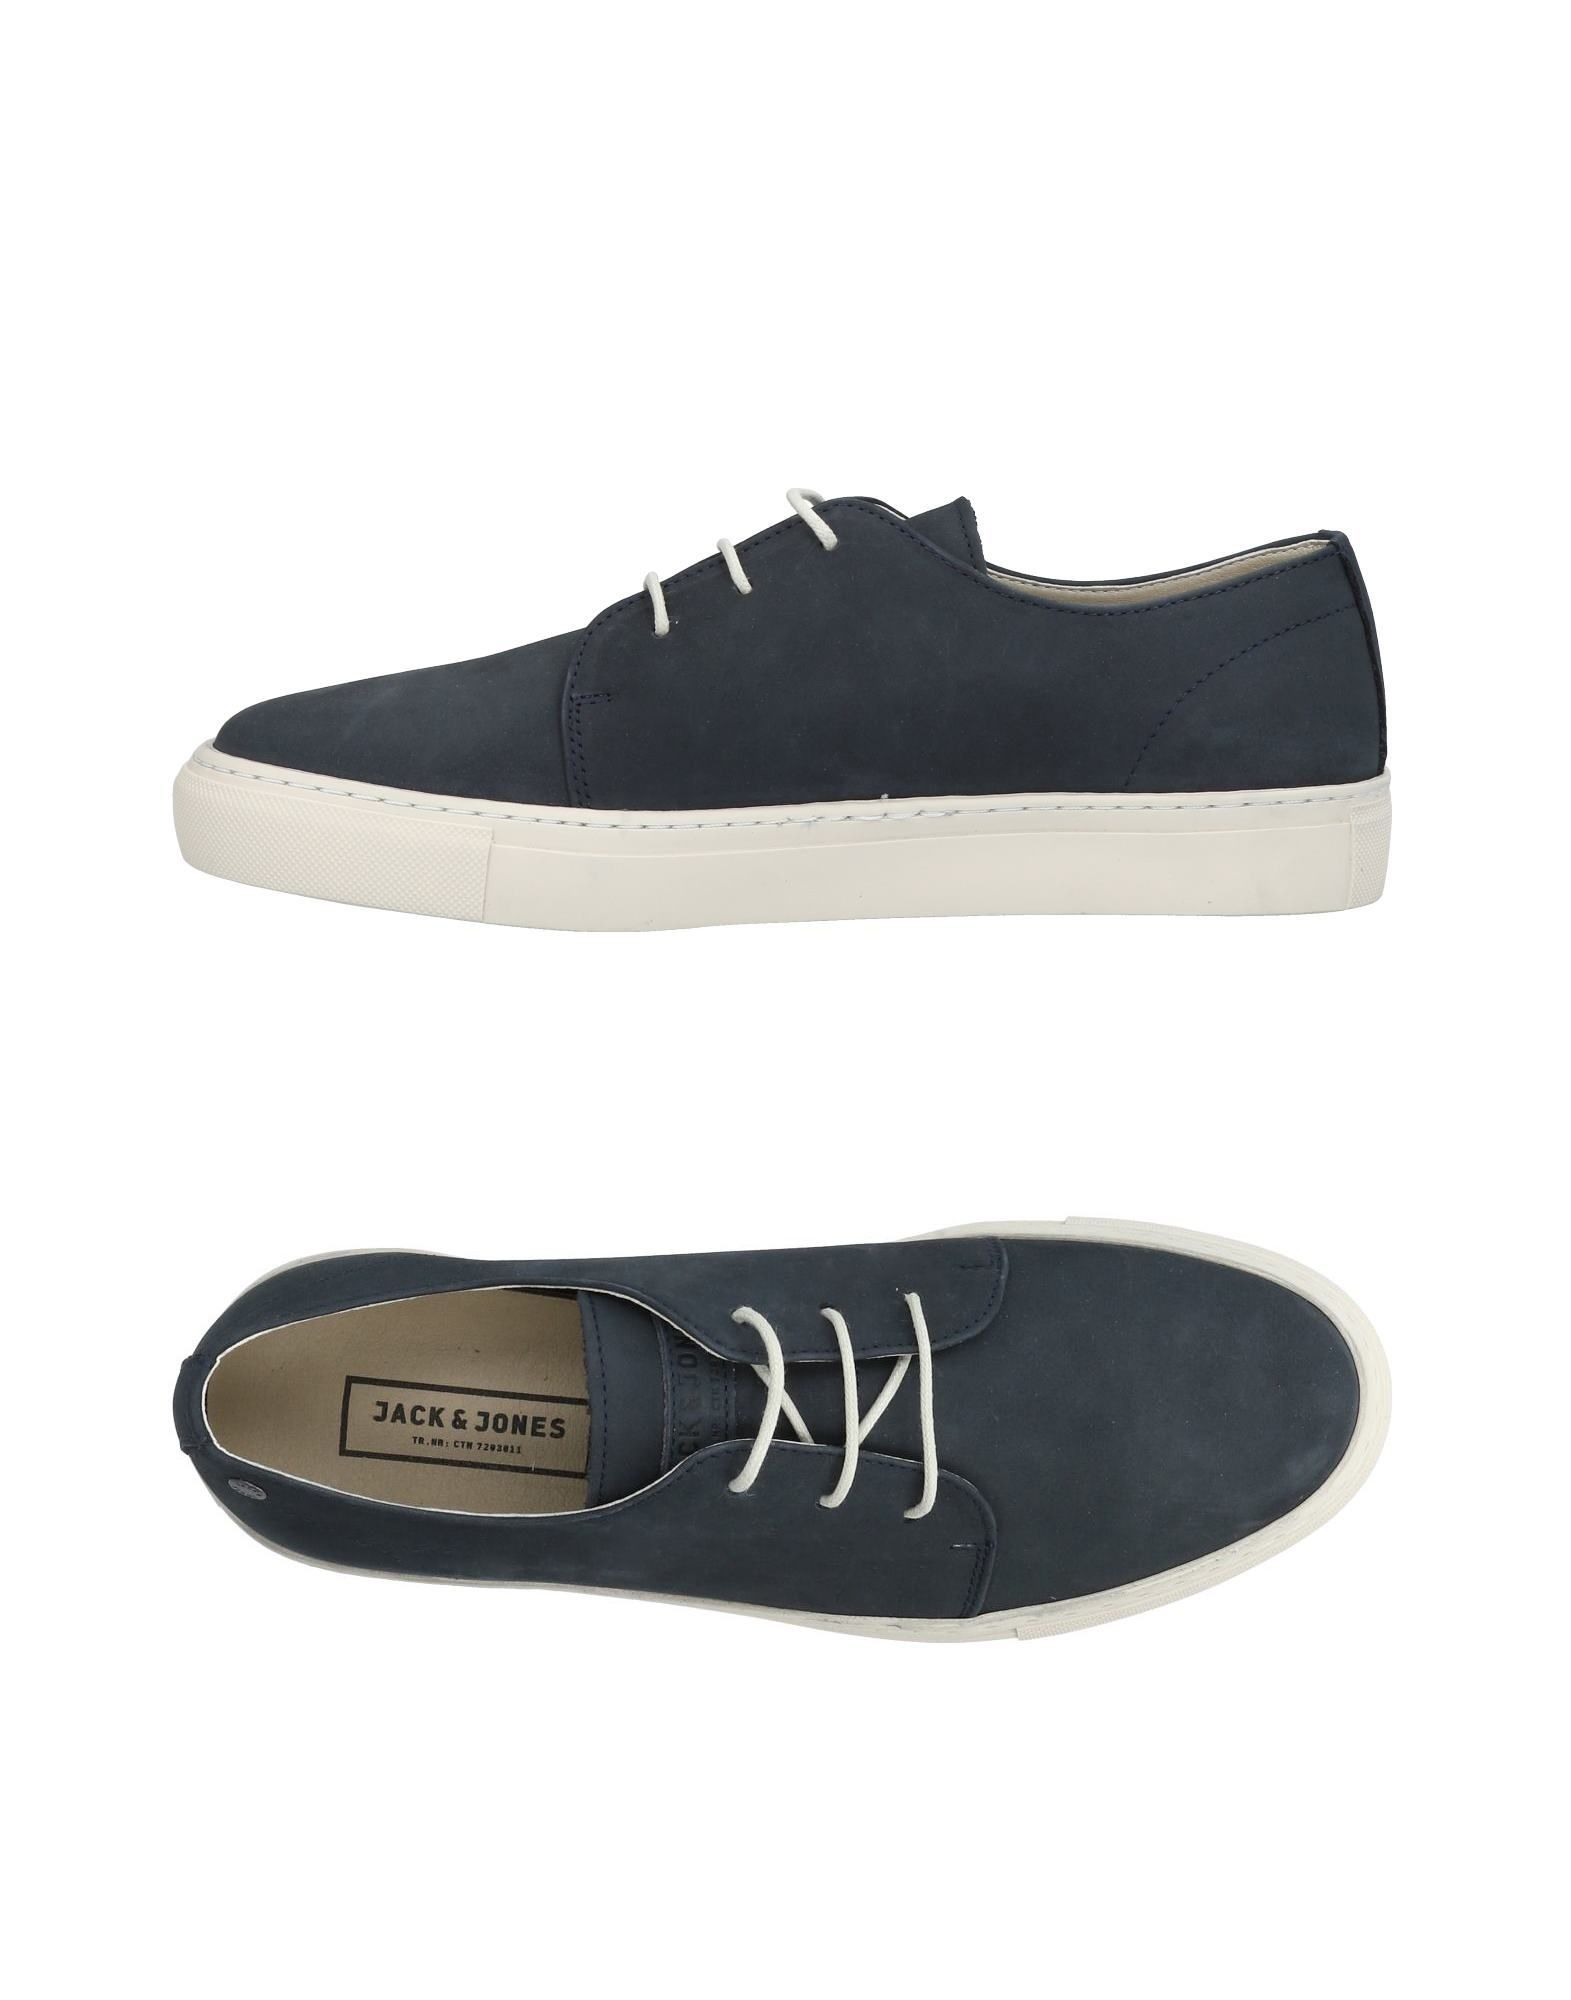 Sneakers Jack & Jones Homme - Sneakers Jack & Jones sur